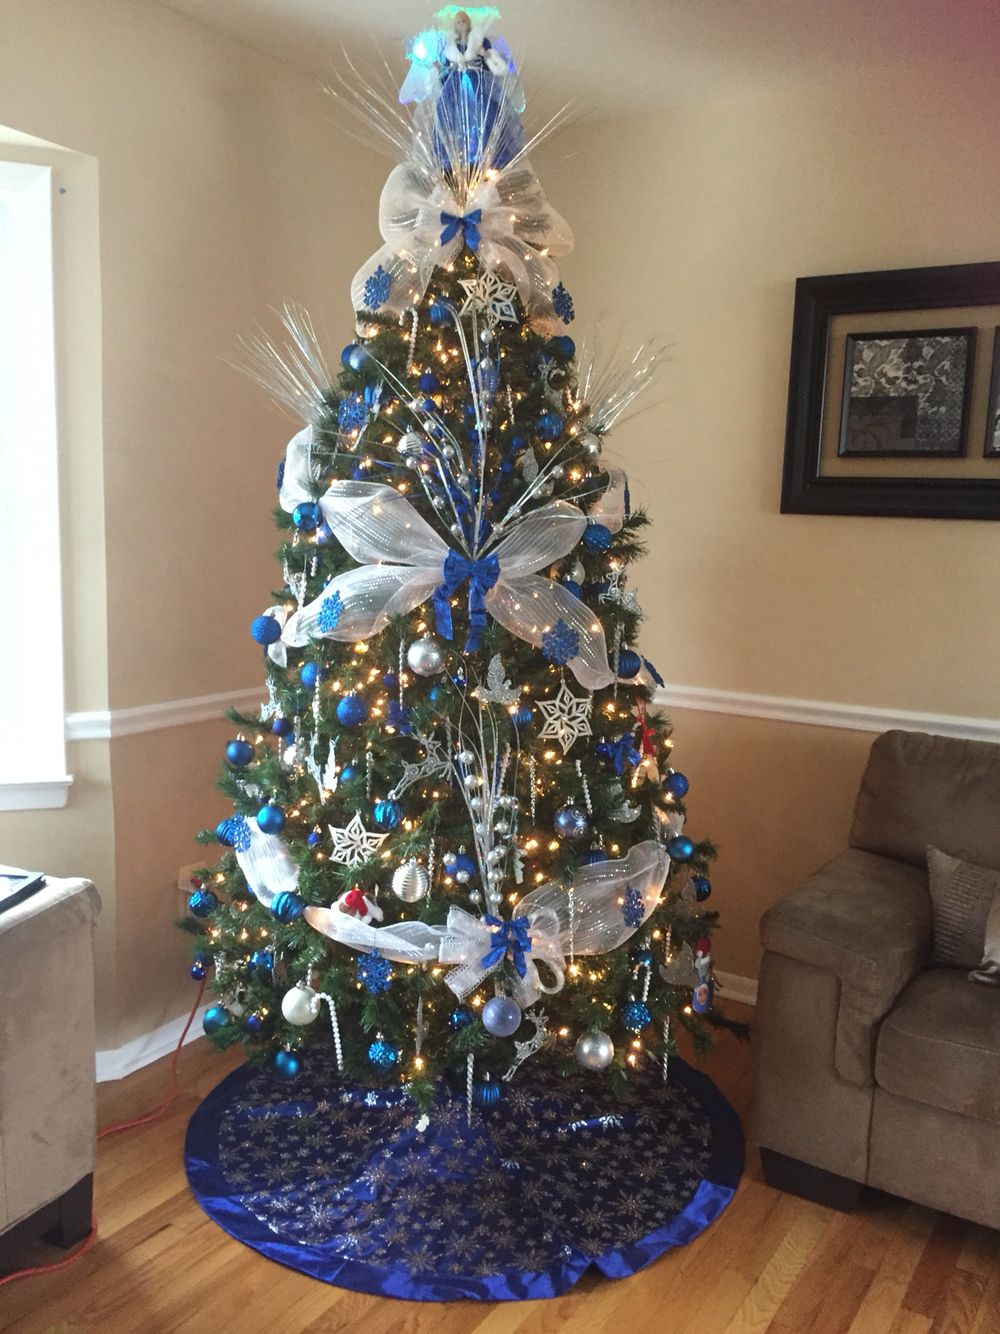 Royal blue, white and silver christmas tree. Love the color combination!